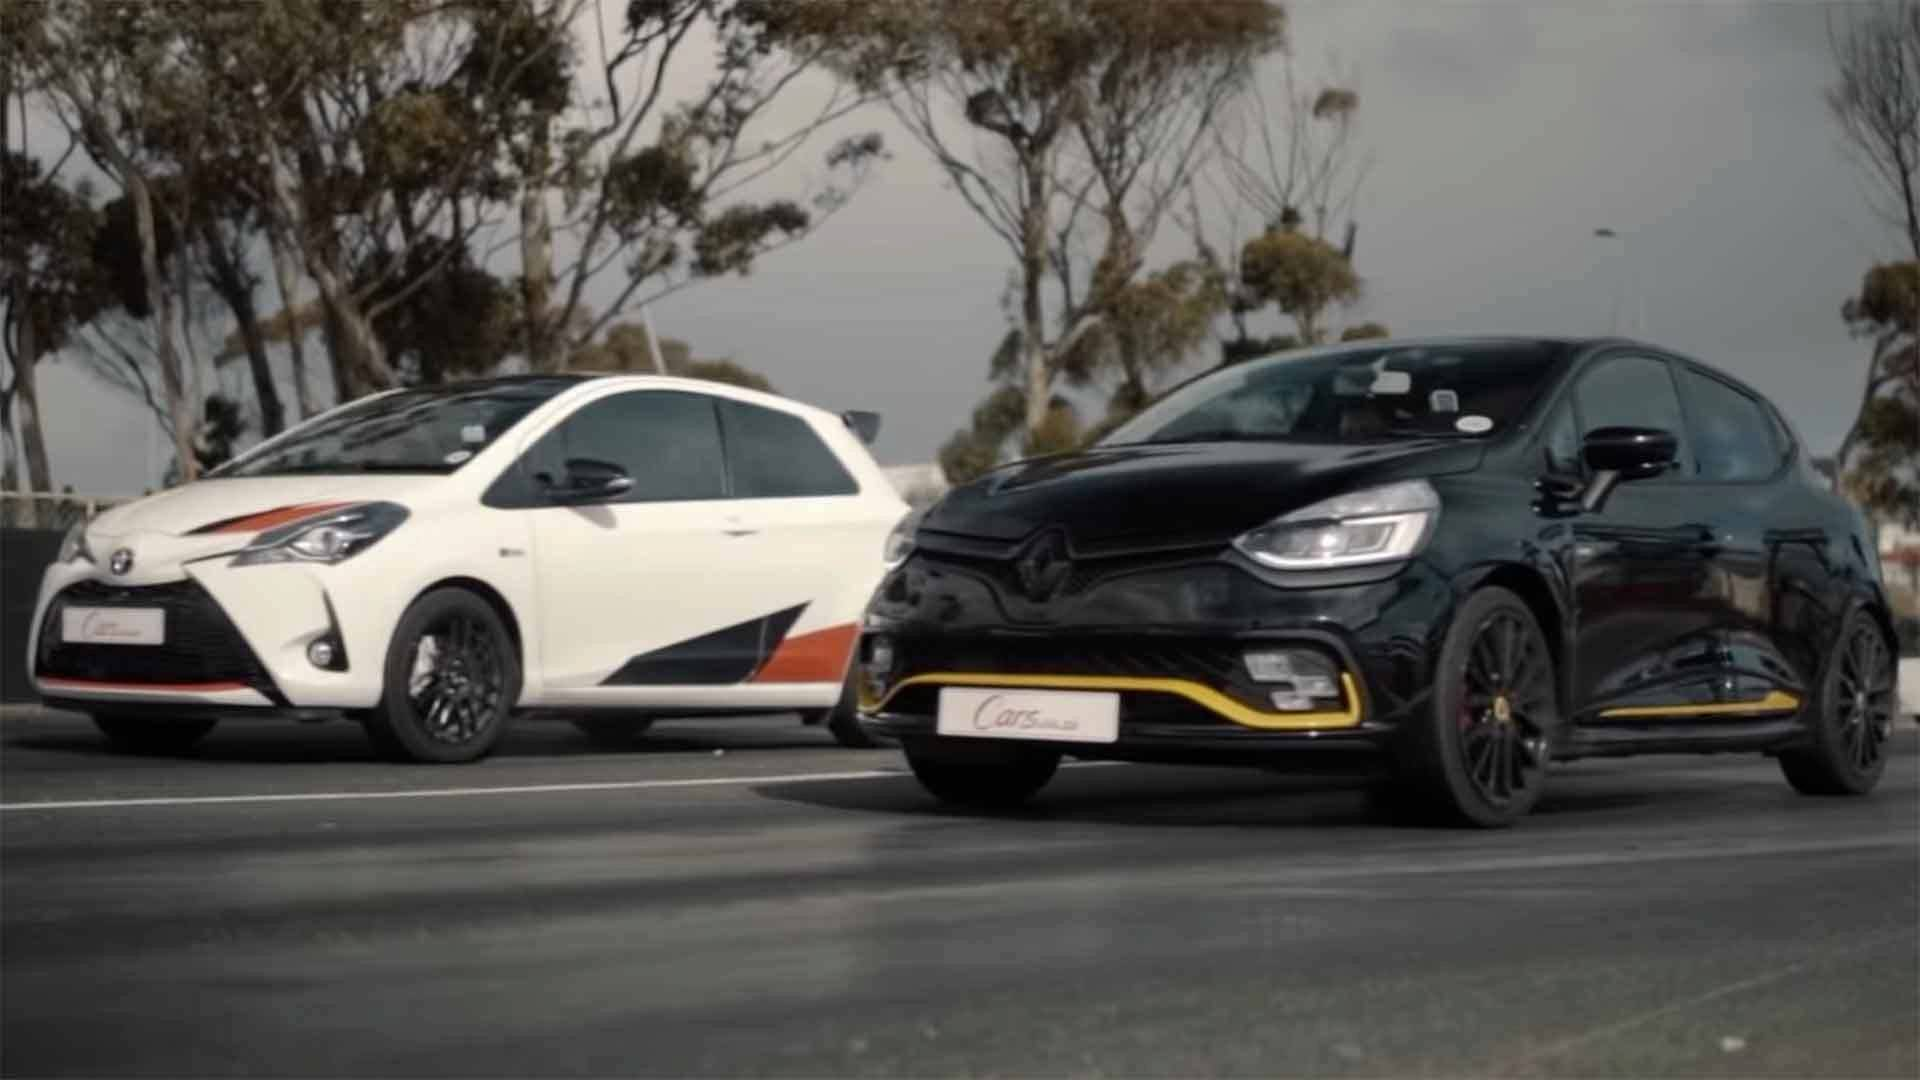 Toyota Yaris GRMN vs Renault Clio R.S. 18 (VIDEO)